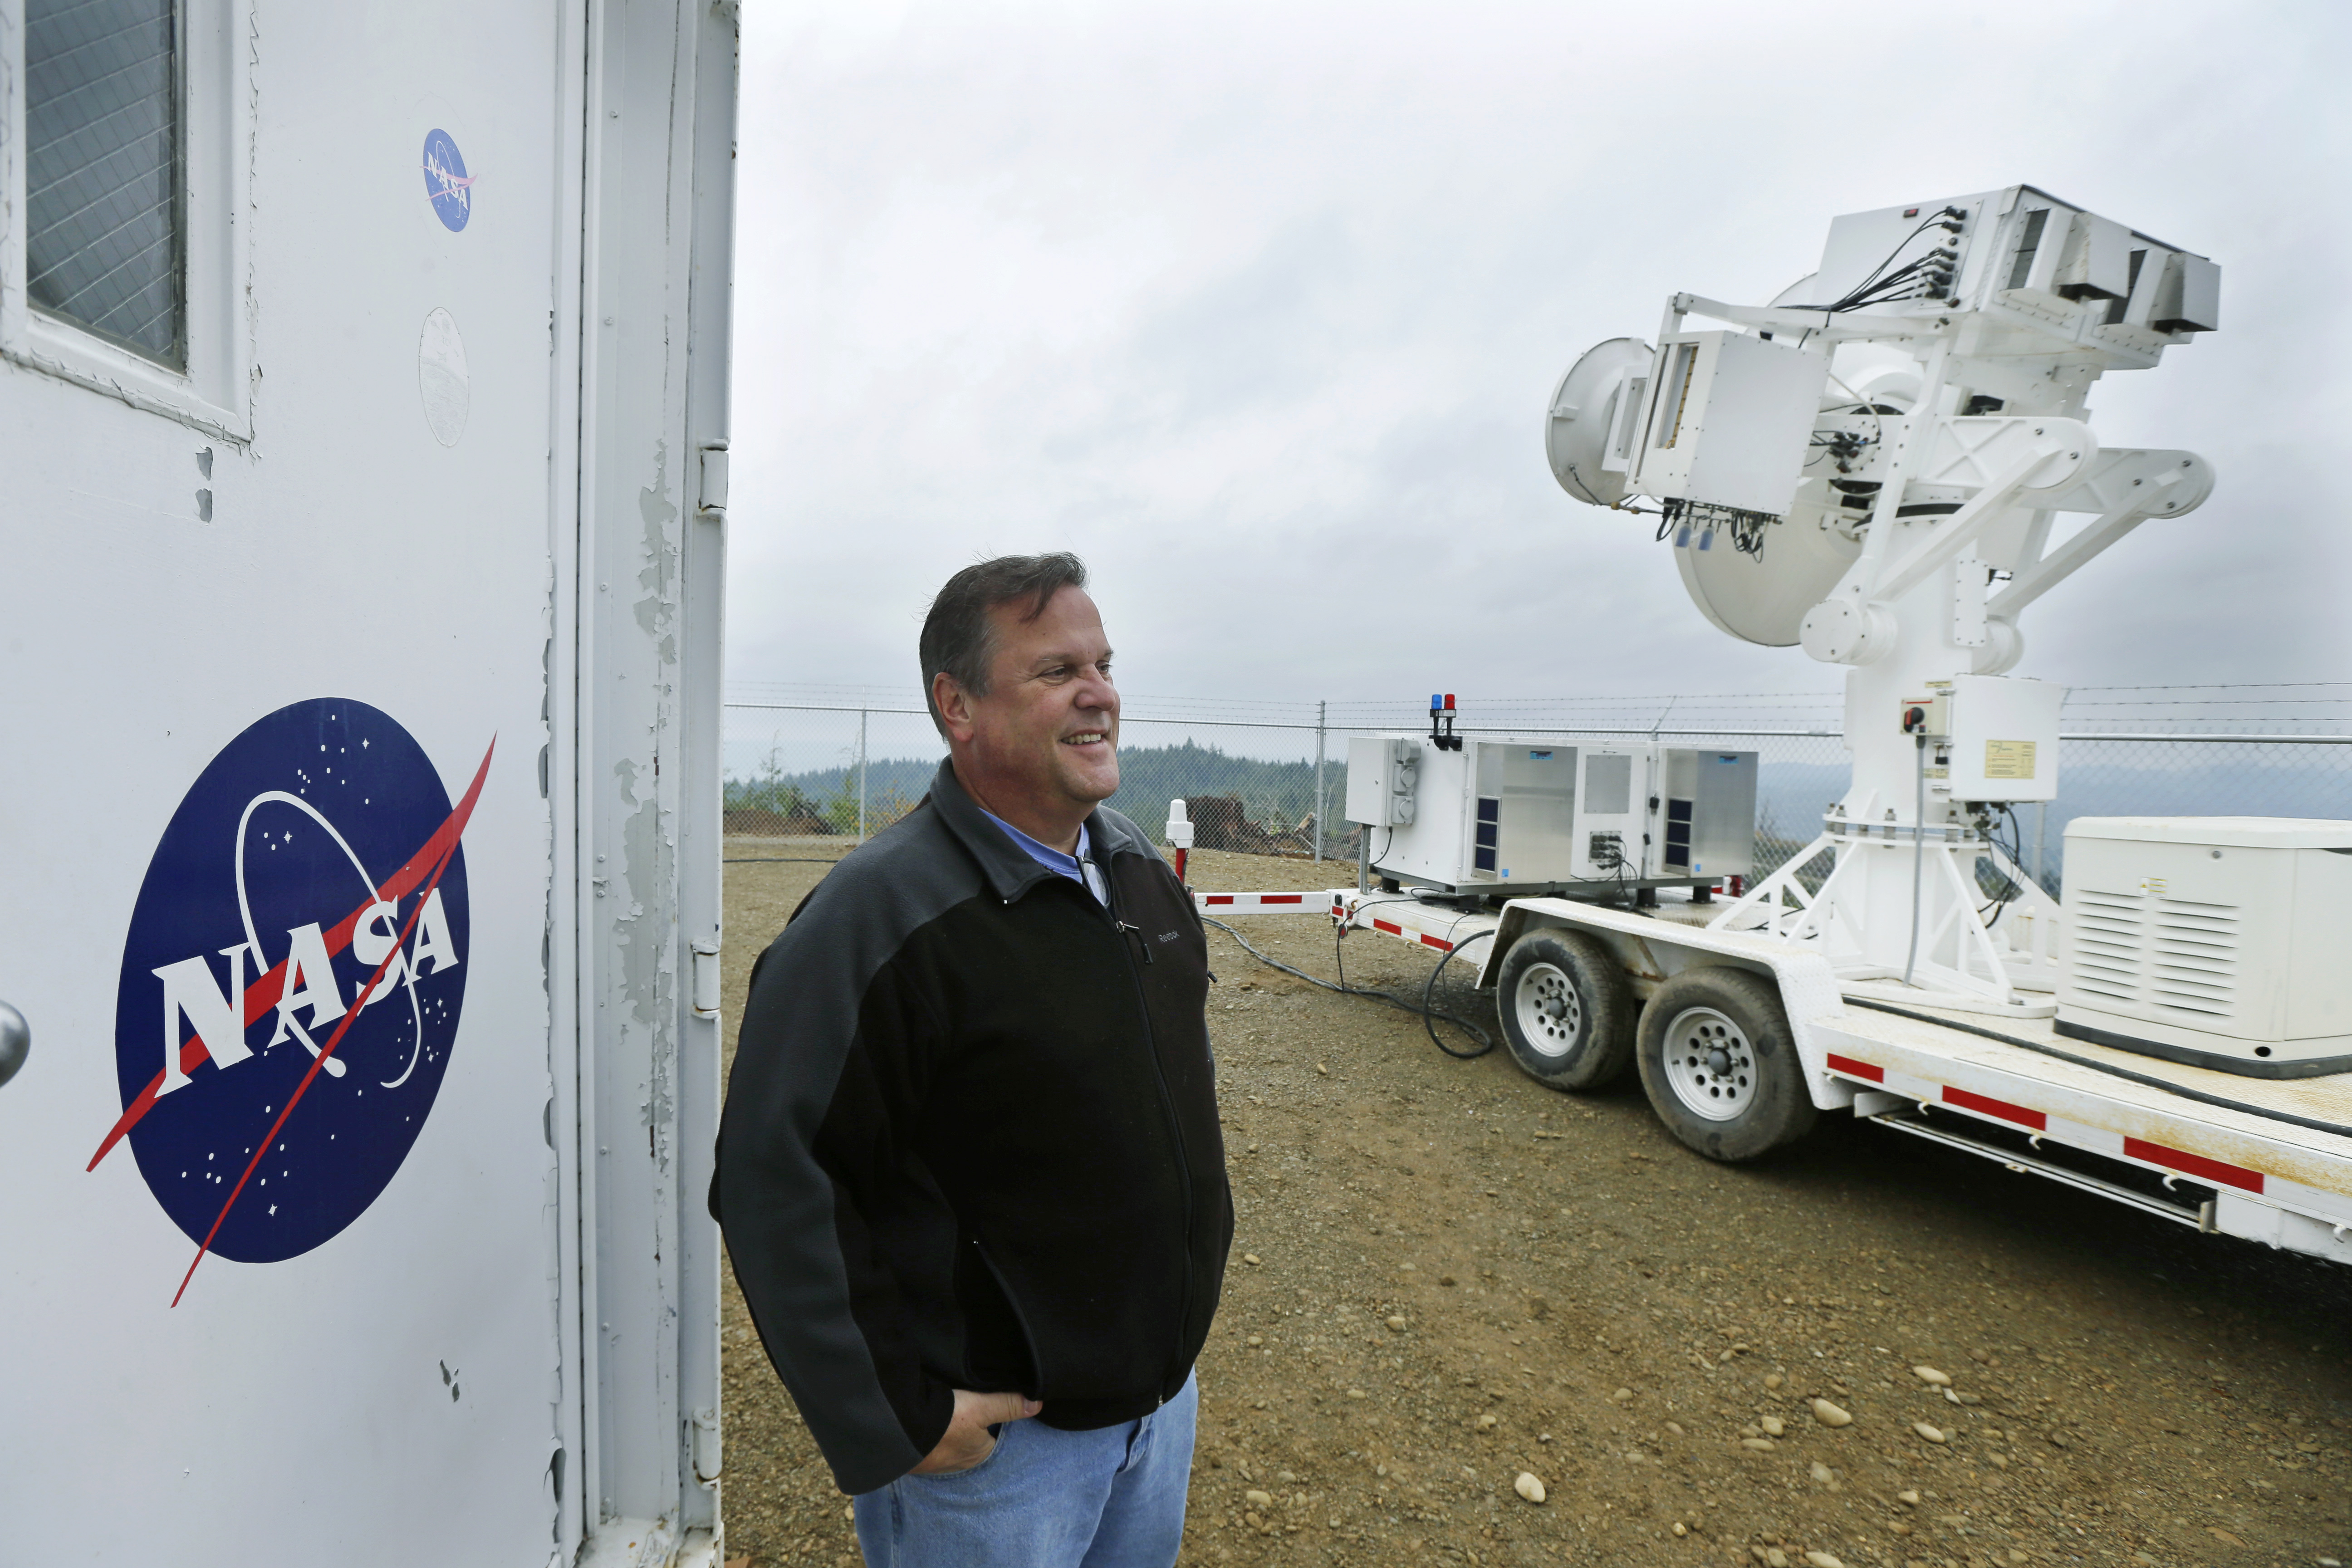 David Wolff, a research scientist with NASA, poses for a photo Friday, November 6, 2015, next to one of the large radar instruments installed on a hilltop near Moclips, Washington. Photo: AP